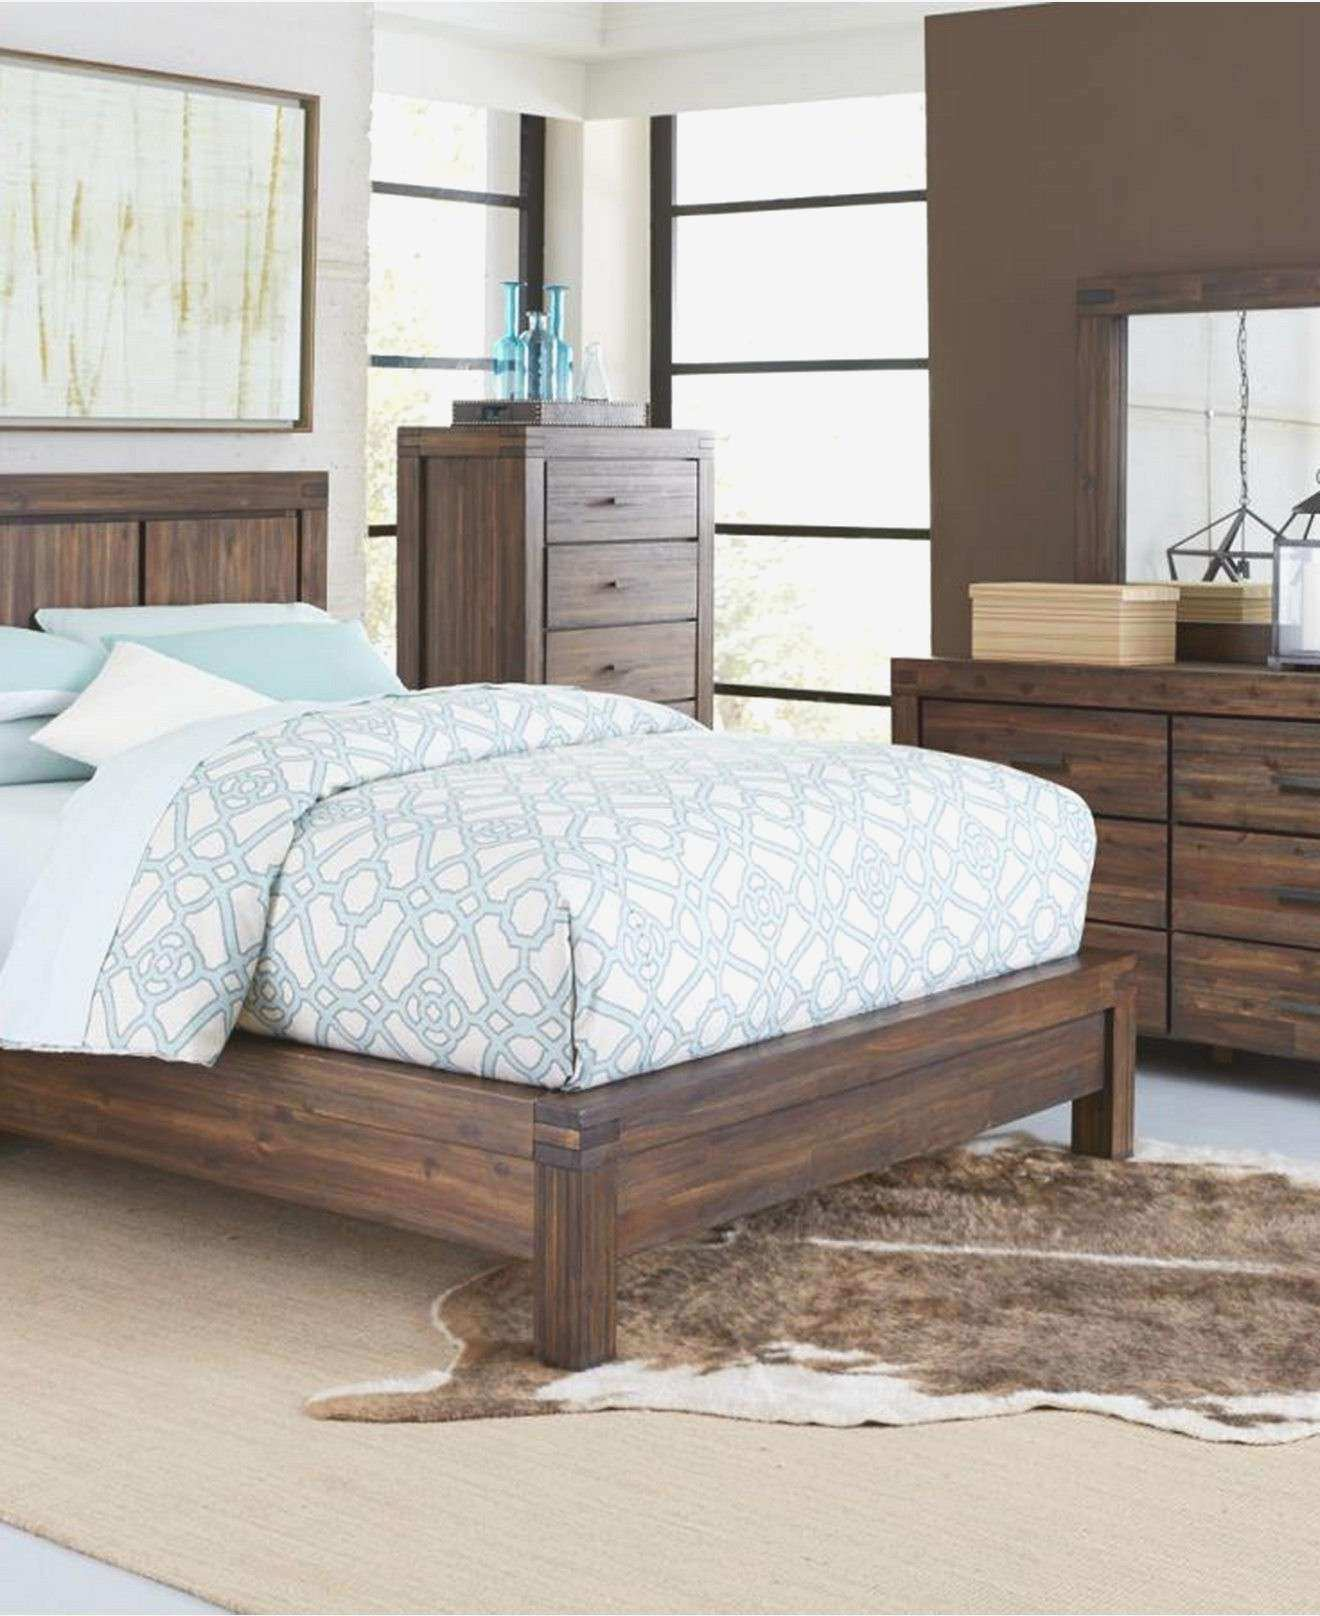 ailey bedroom furniture pertaining to inviting room ideas pier one imports mirrored collection bassett high end product ikea set apppie org